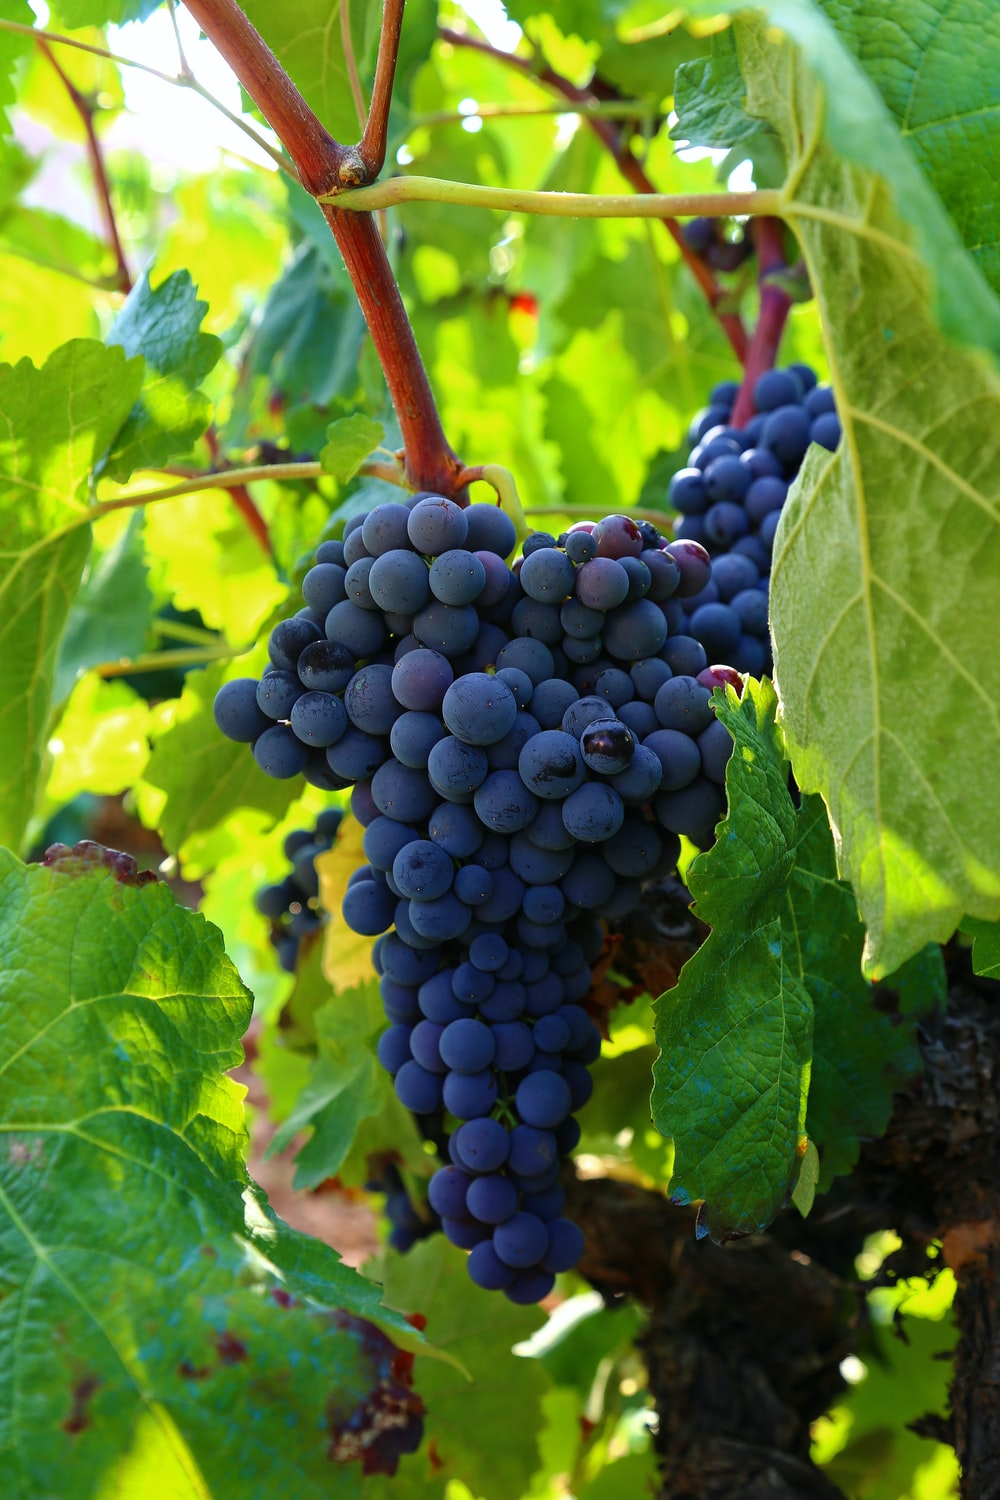 view of grapes on tree